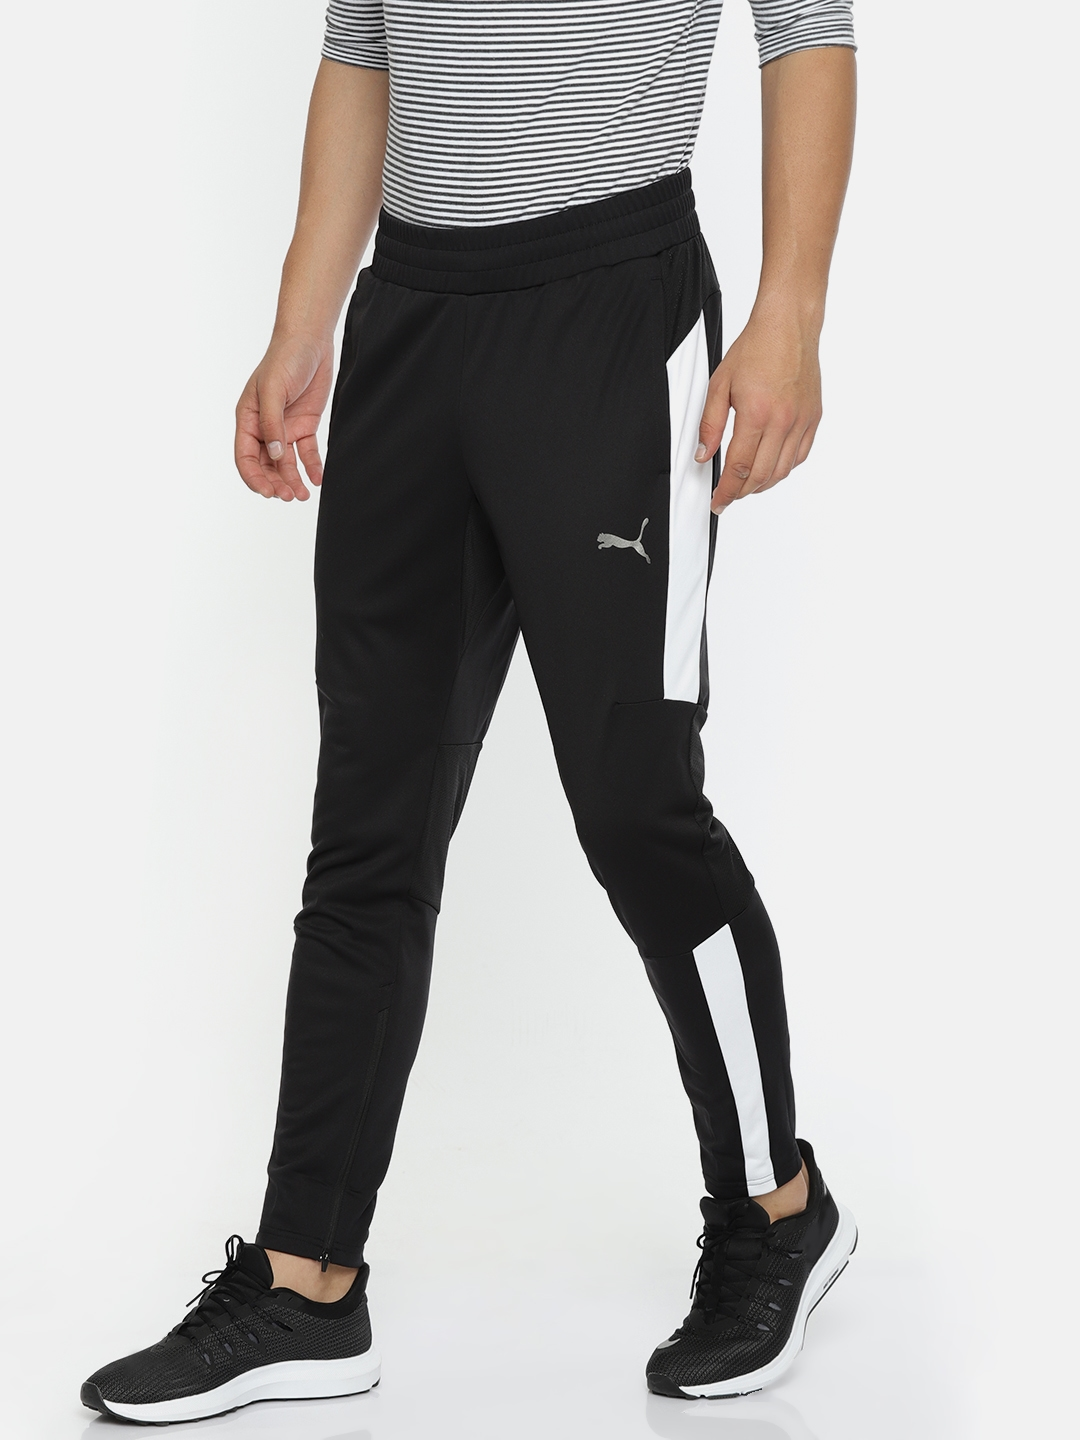 ab8de33510 Buy Puma Men Black Solid Energy Blaster Track Pants - Track Pants ...